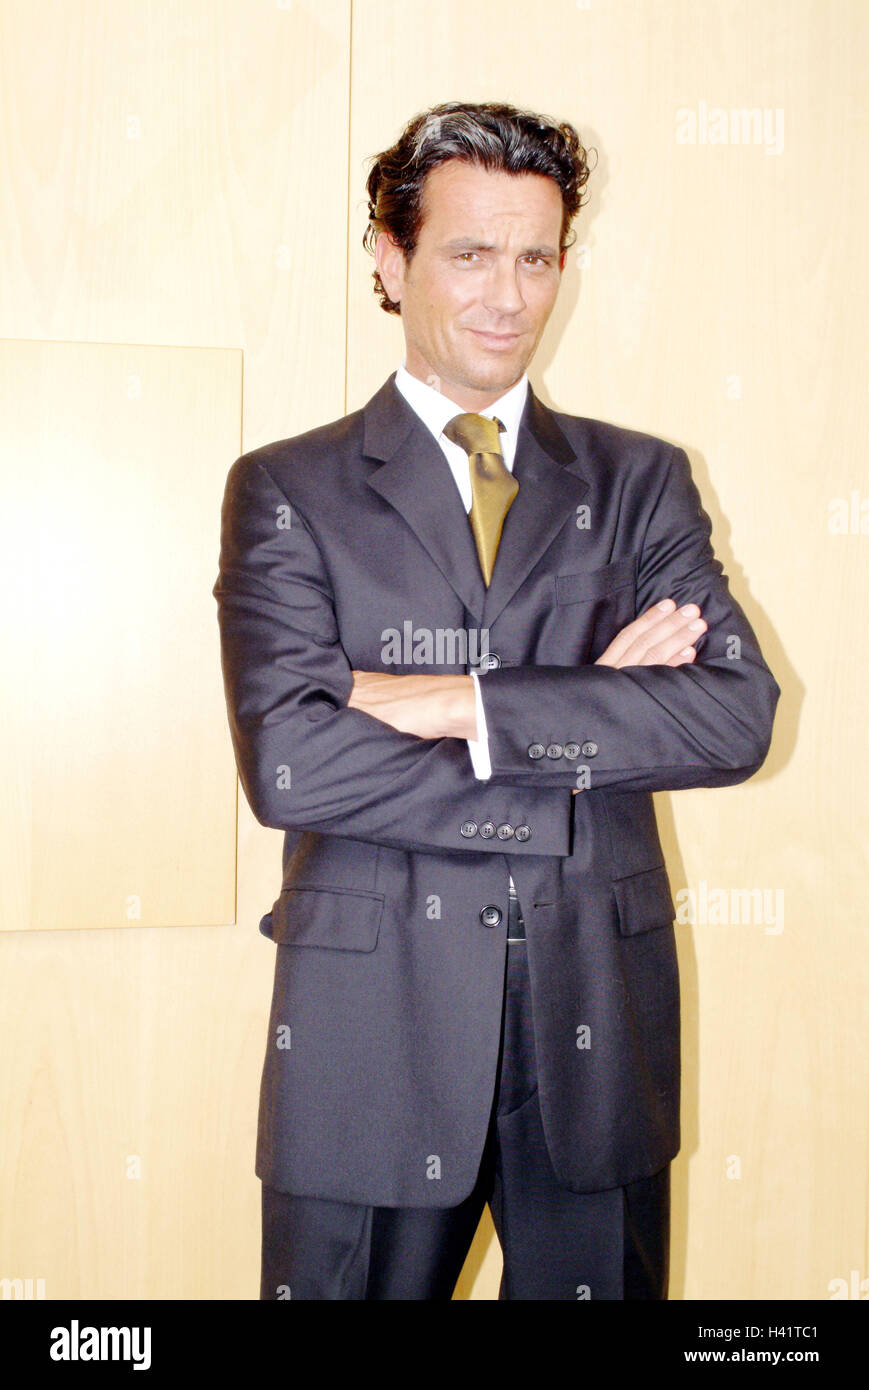 Office, manager, stand, smile, self-confidently, bank, cashier, banker, man, 34 years, businessman, clothes, suit, - Stock Image